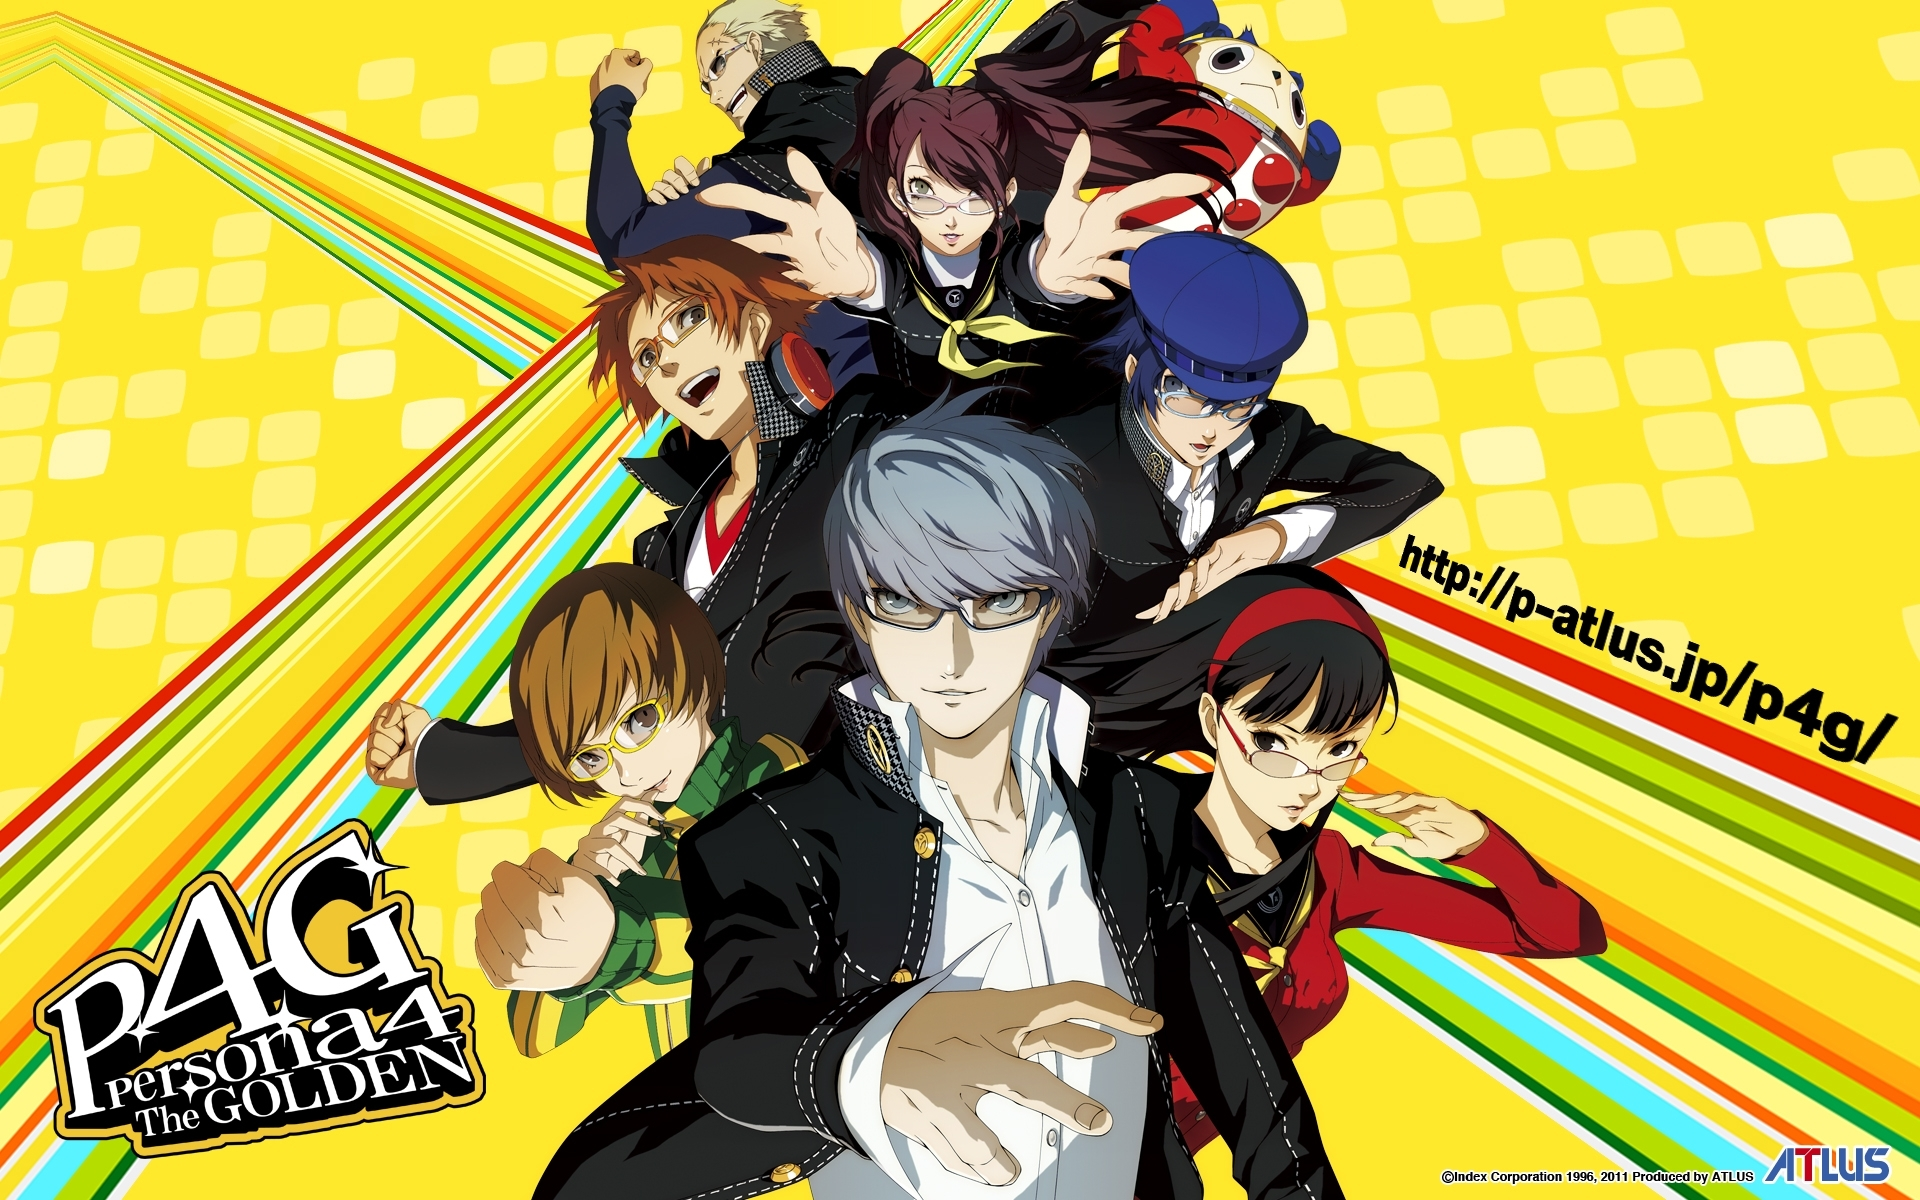 persona 4 the golden animation - leblogdegeek